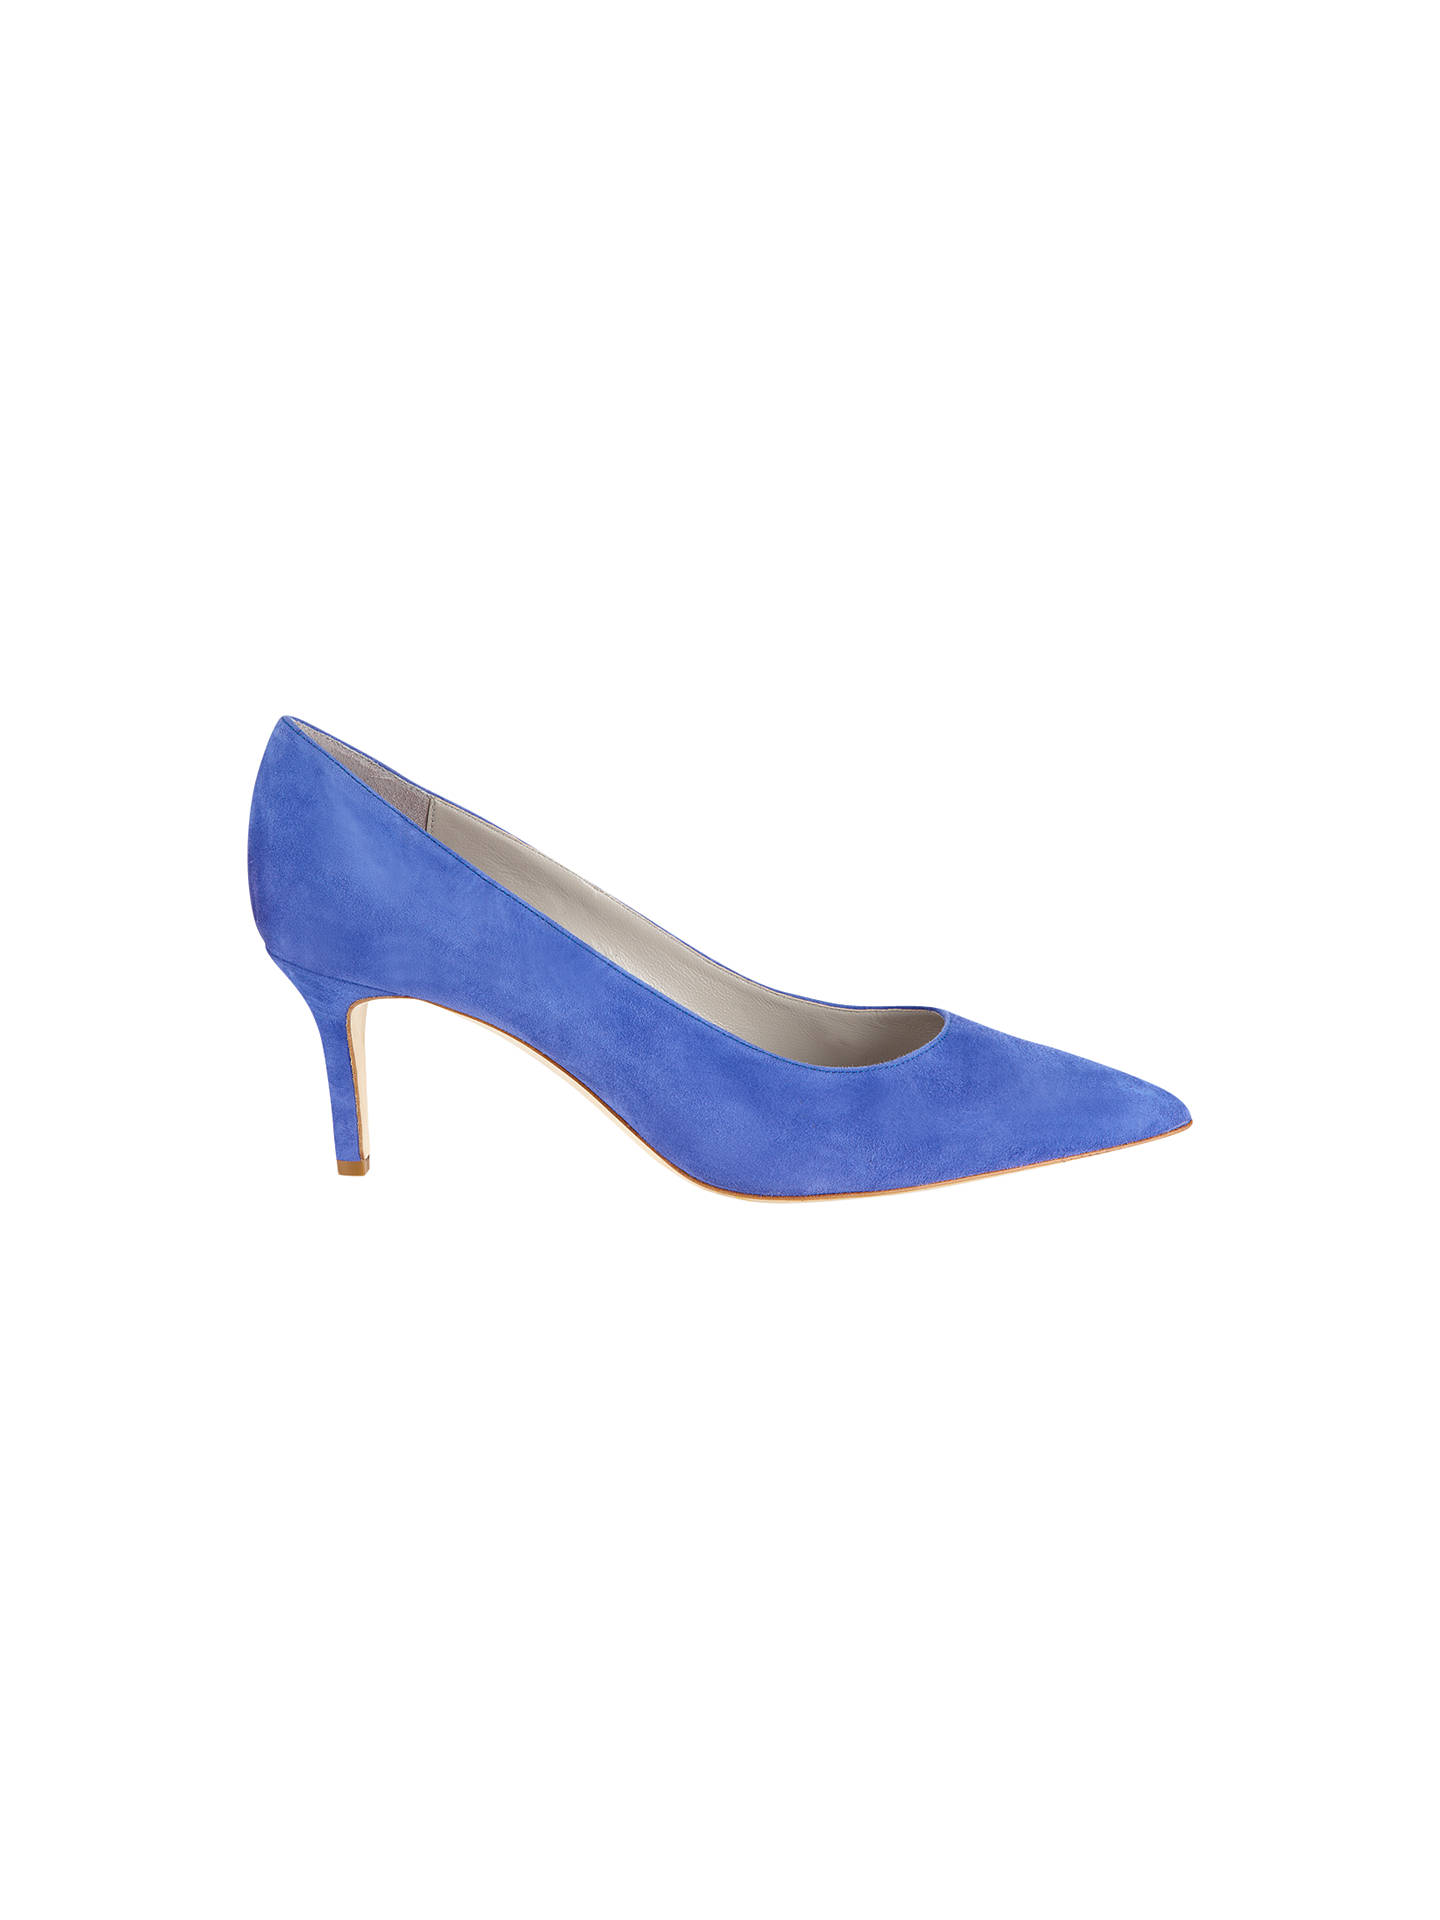 fafe111166 Buy Jigsaw Milly Suede Court Shoes, Bright Blue, 3 Online at johnlewis.com  ...